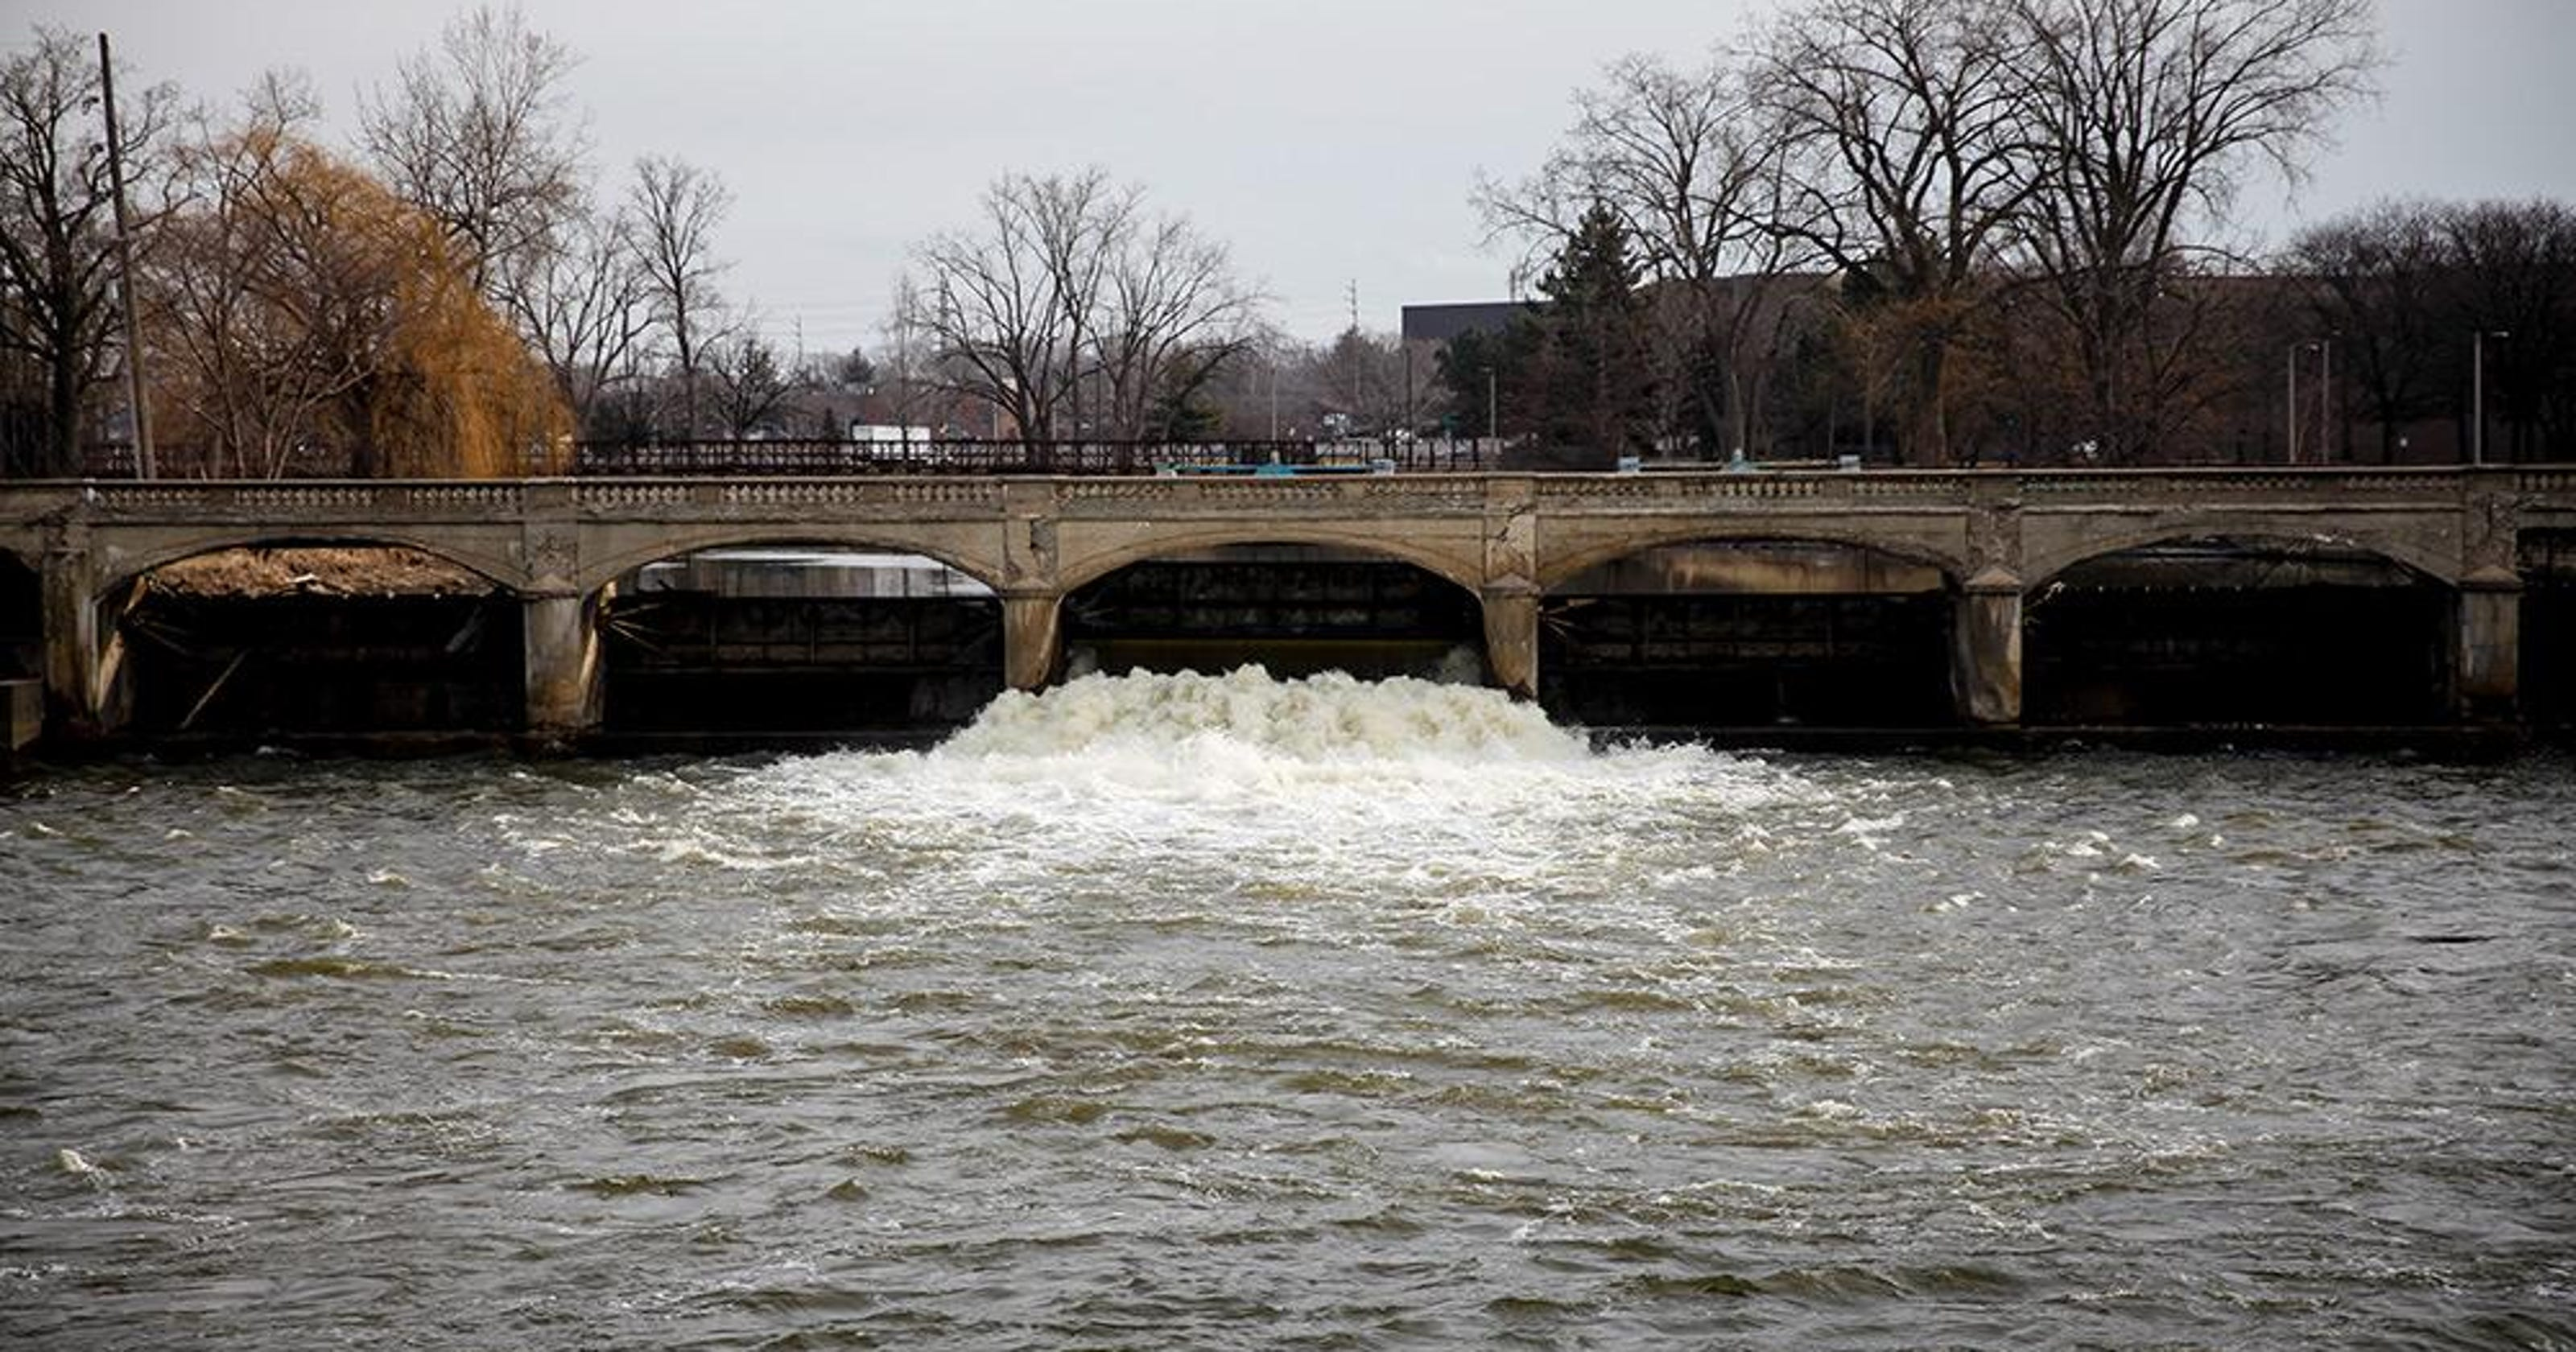 Study: Flint water switch led to most Legionnaires' cases